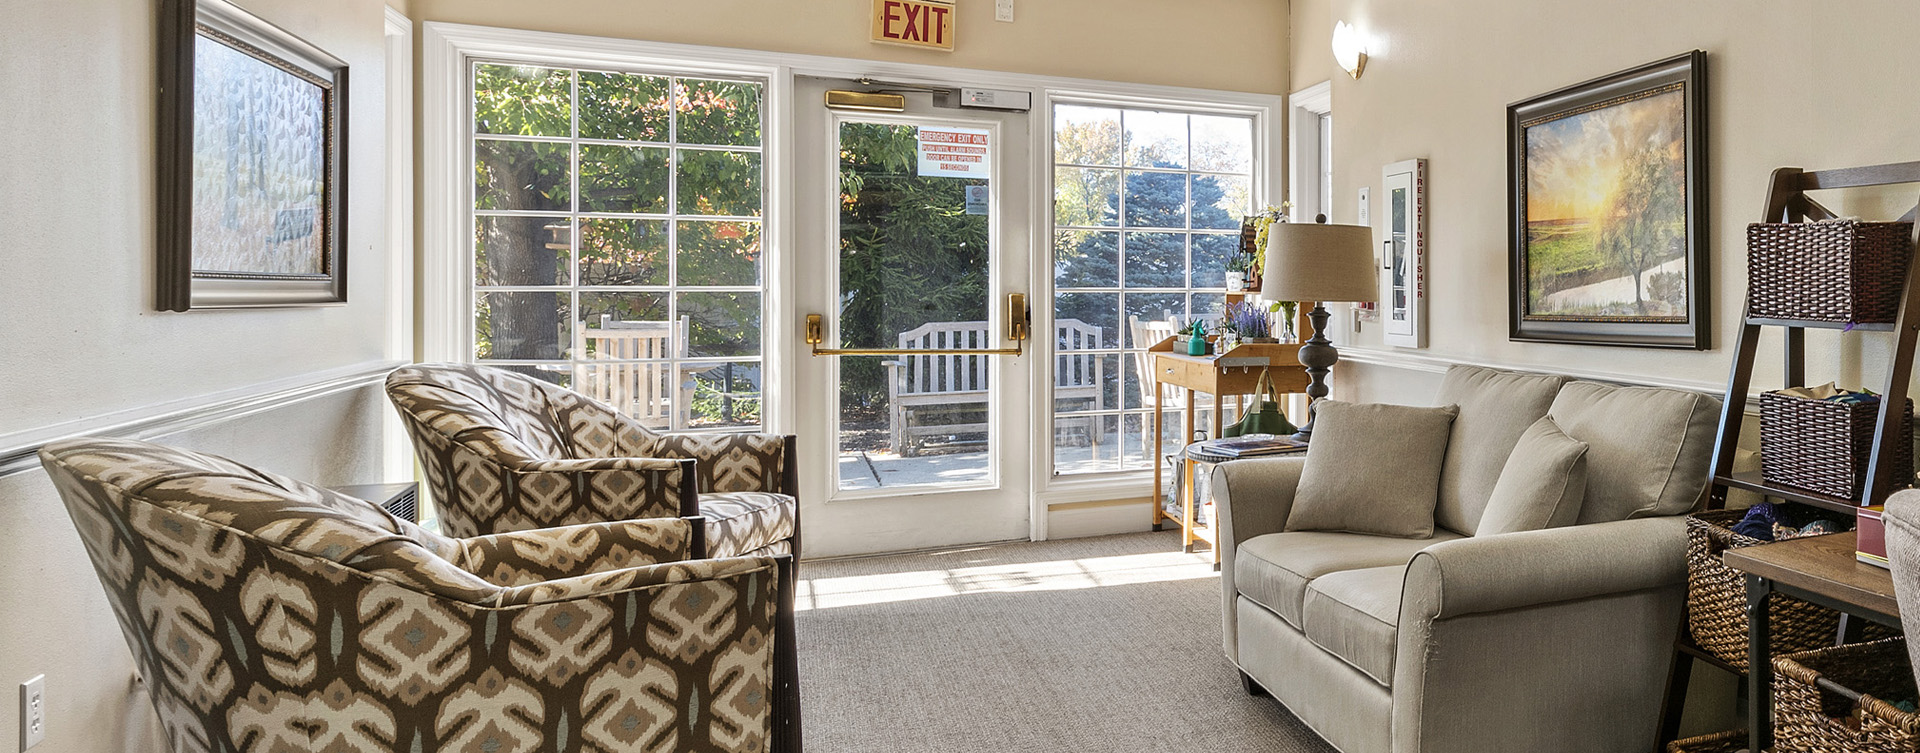 Enjoy the view of the outdoors from the sunroom at Bickford of Worthington